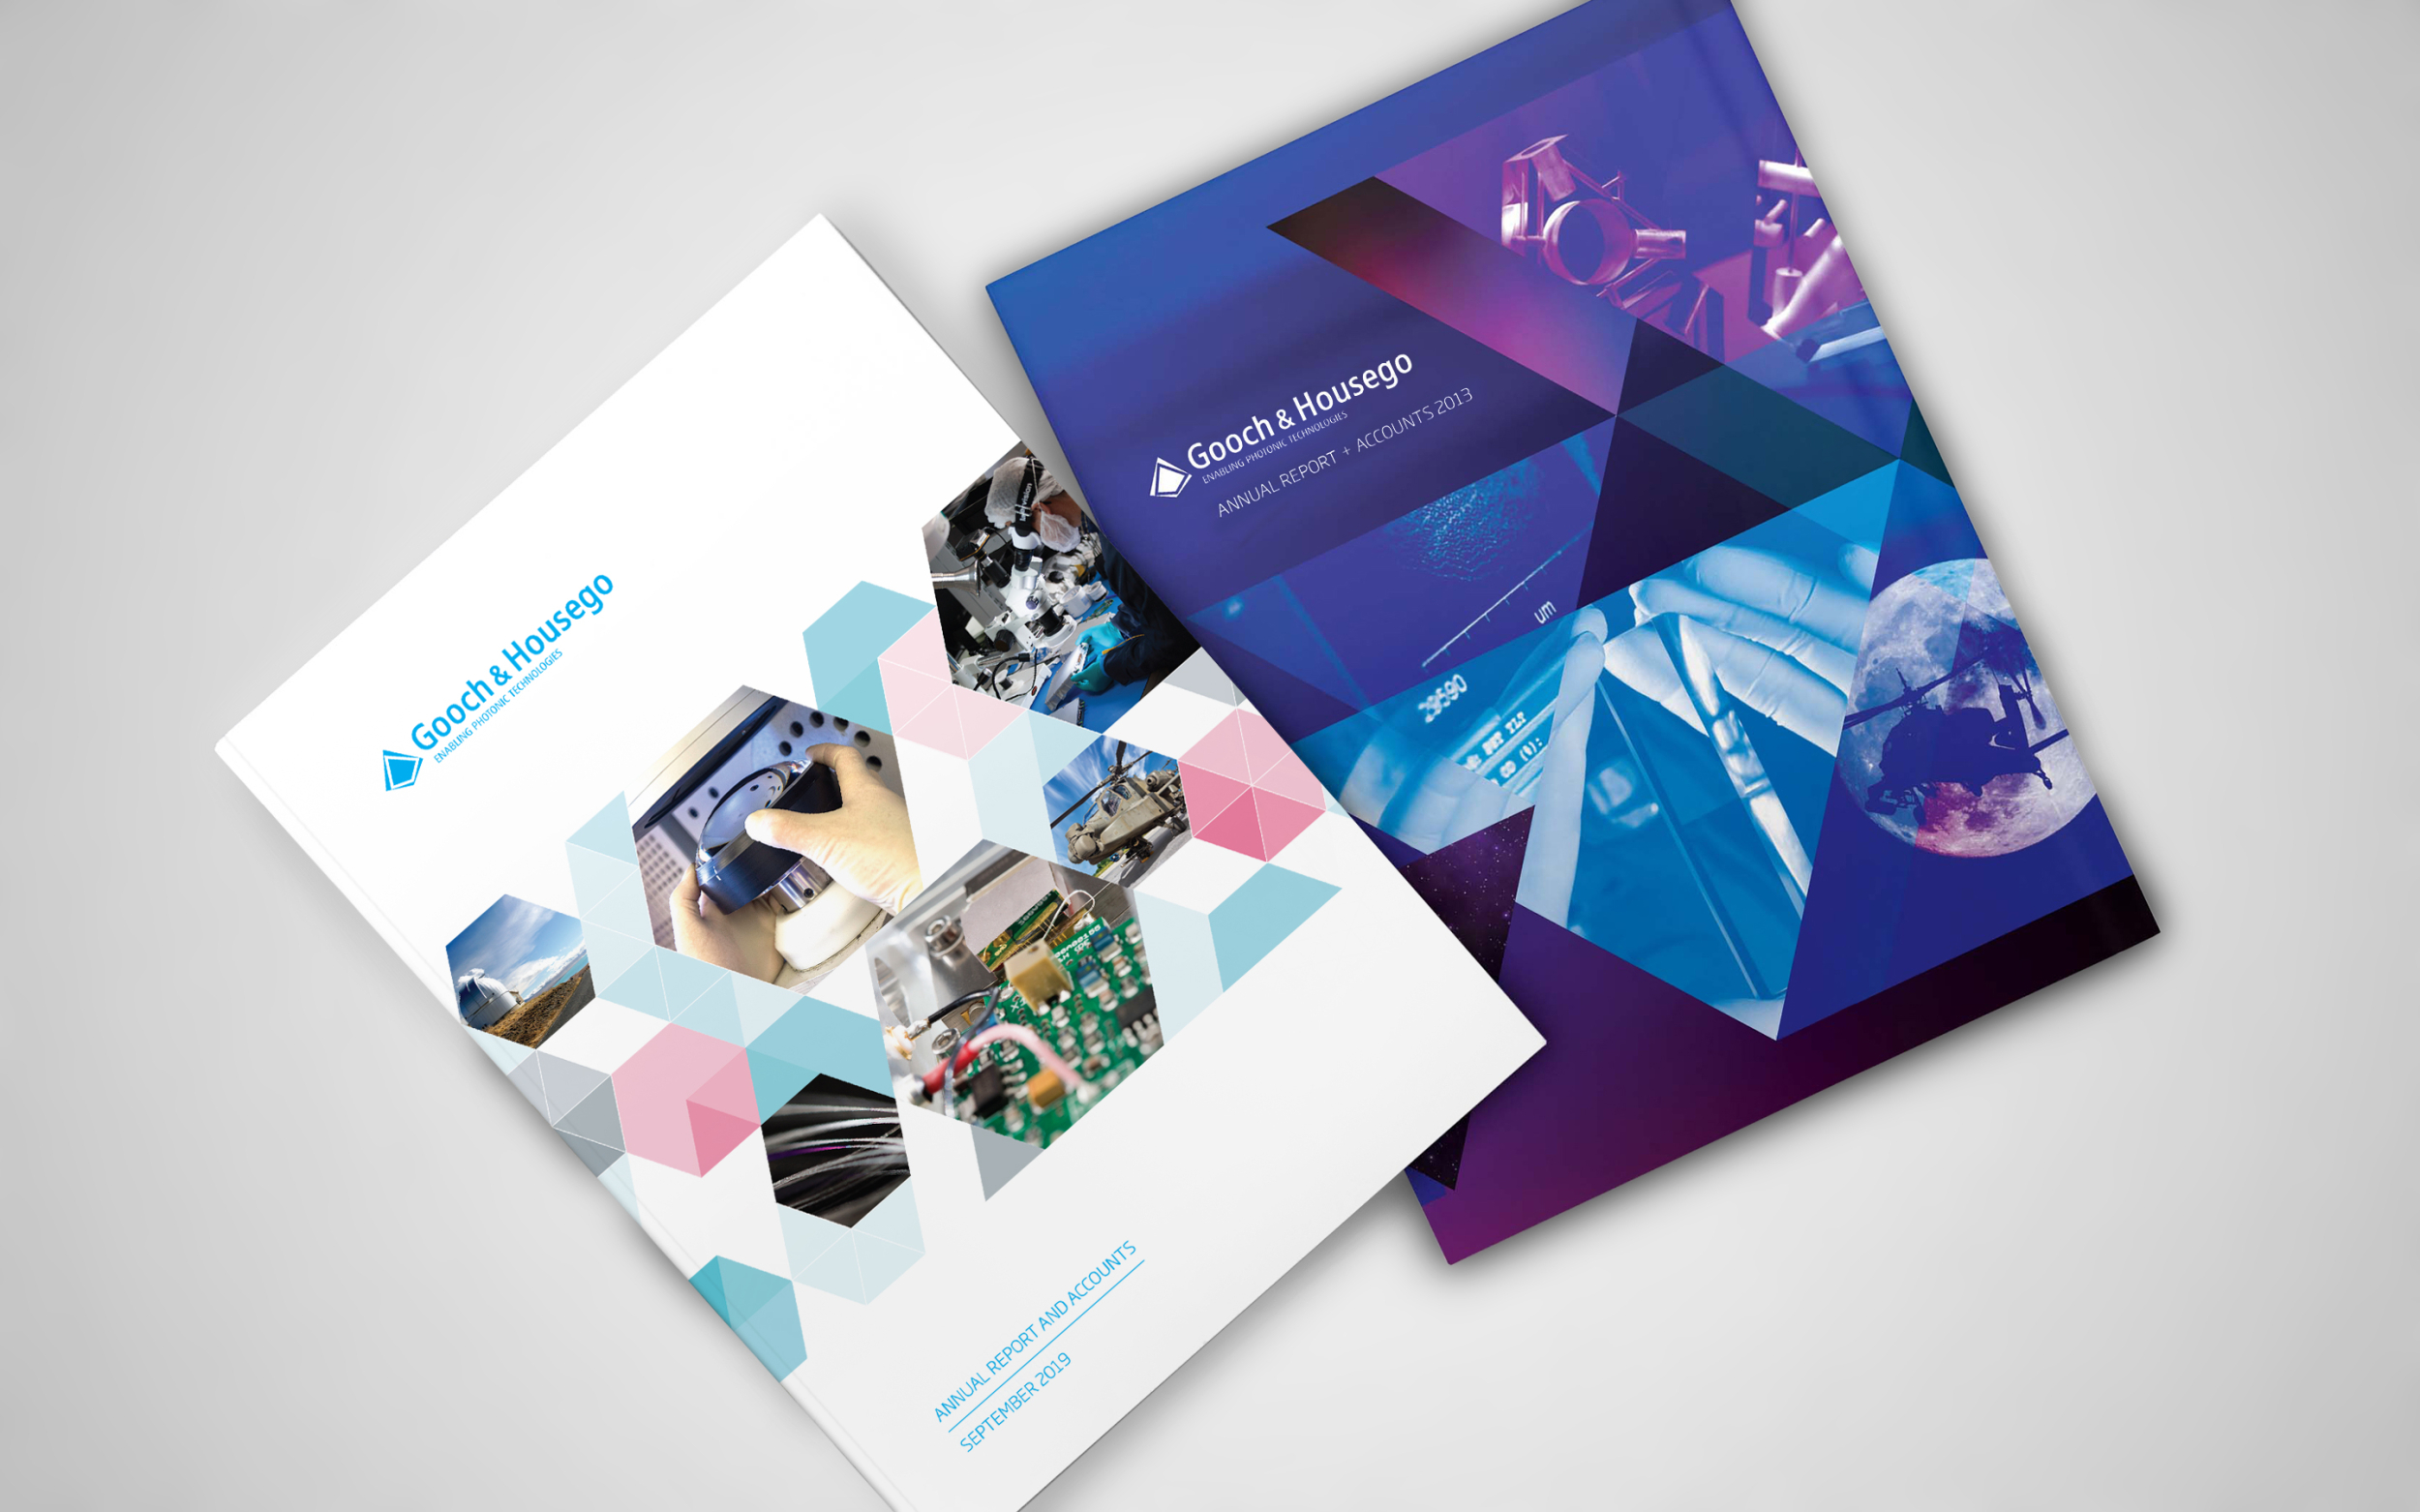 Gooch - Annual Report Covers